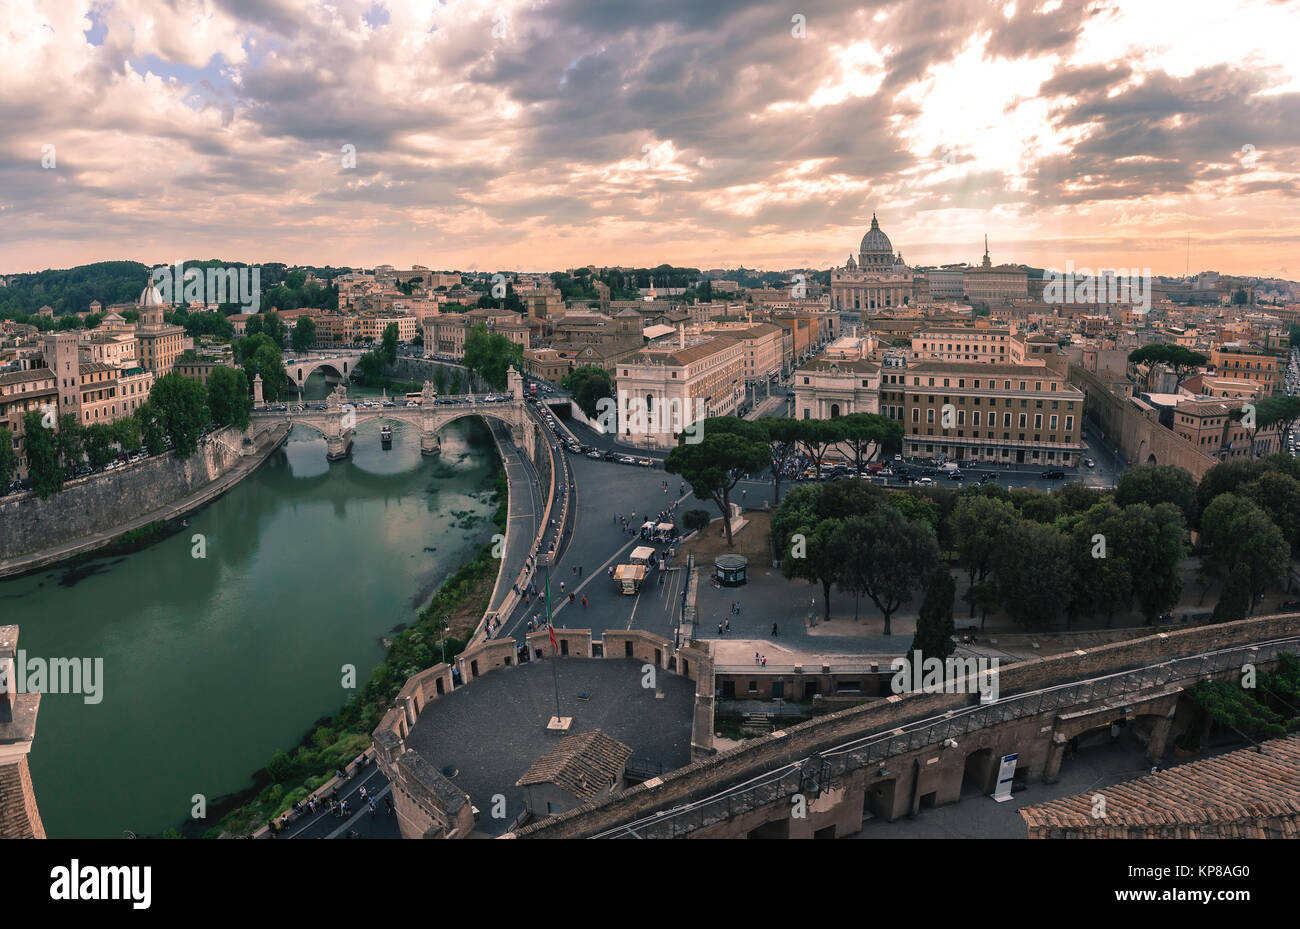 Aerial wonderful view of Rome at sunset, Italy - Stock Image